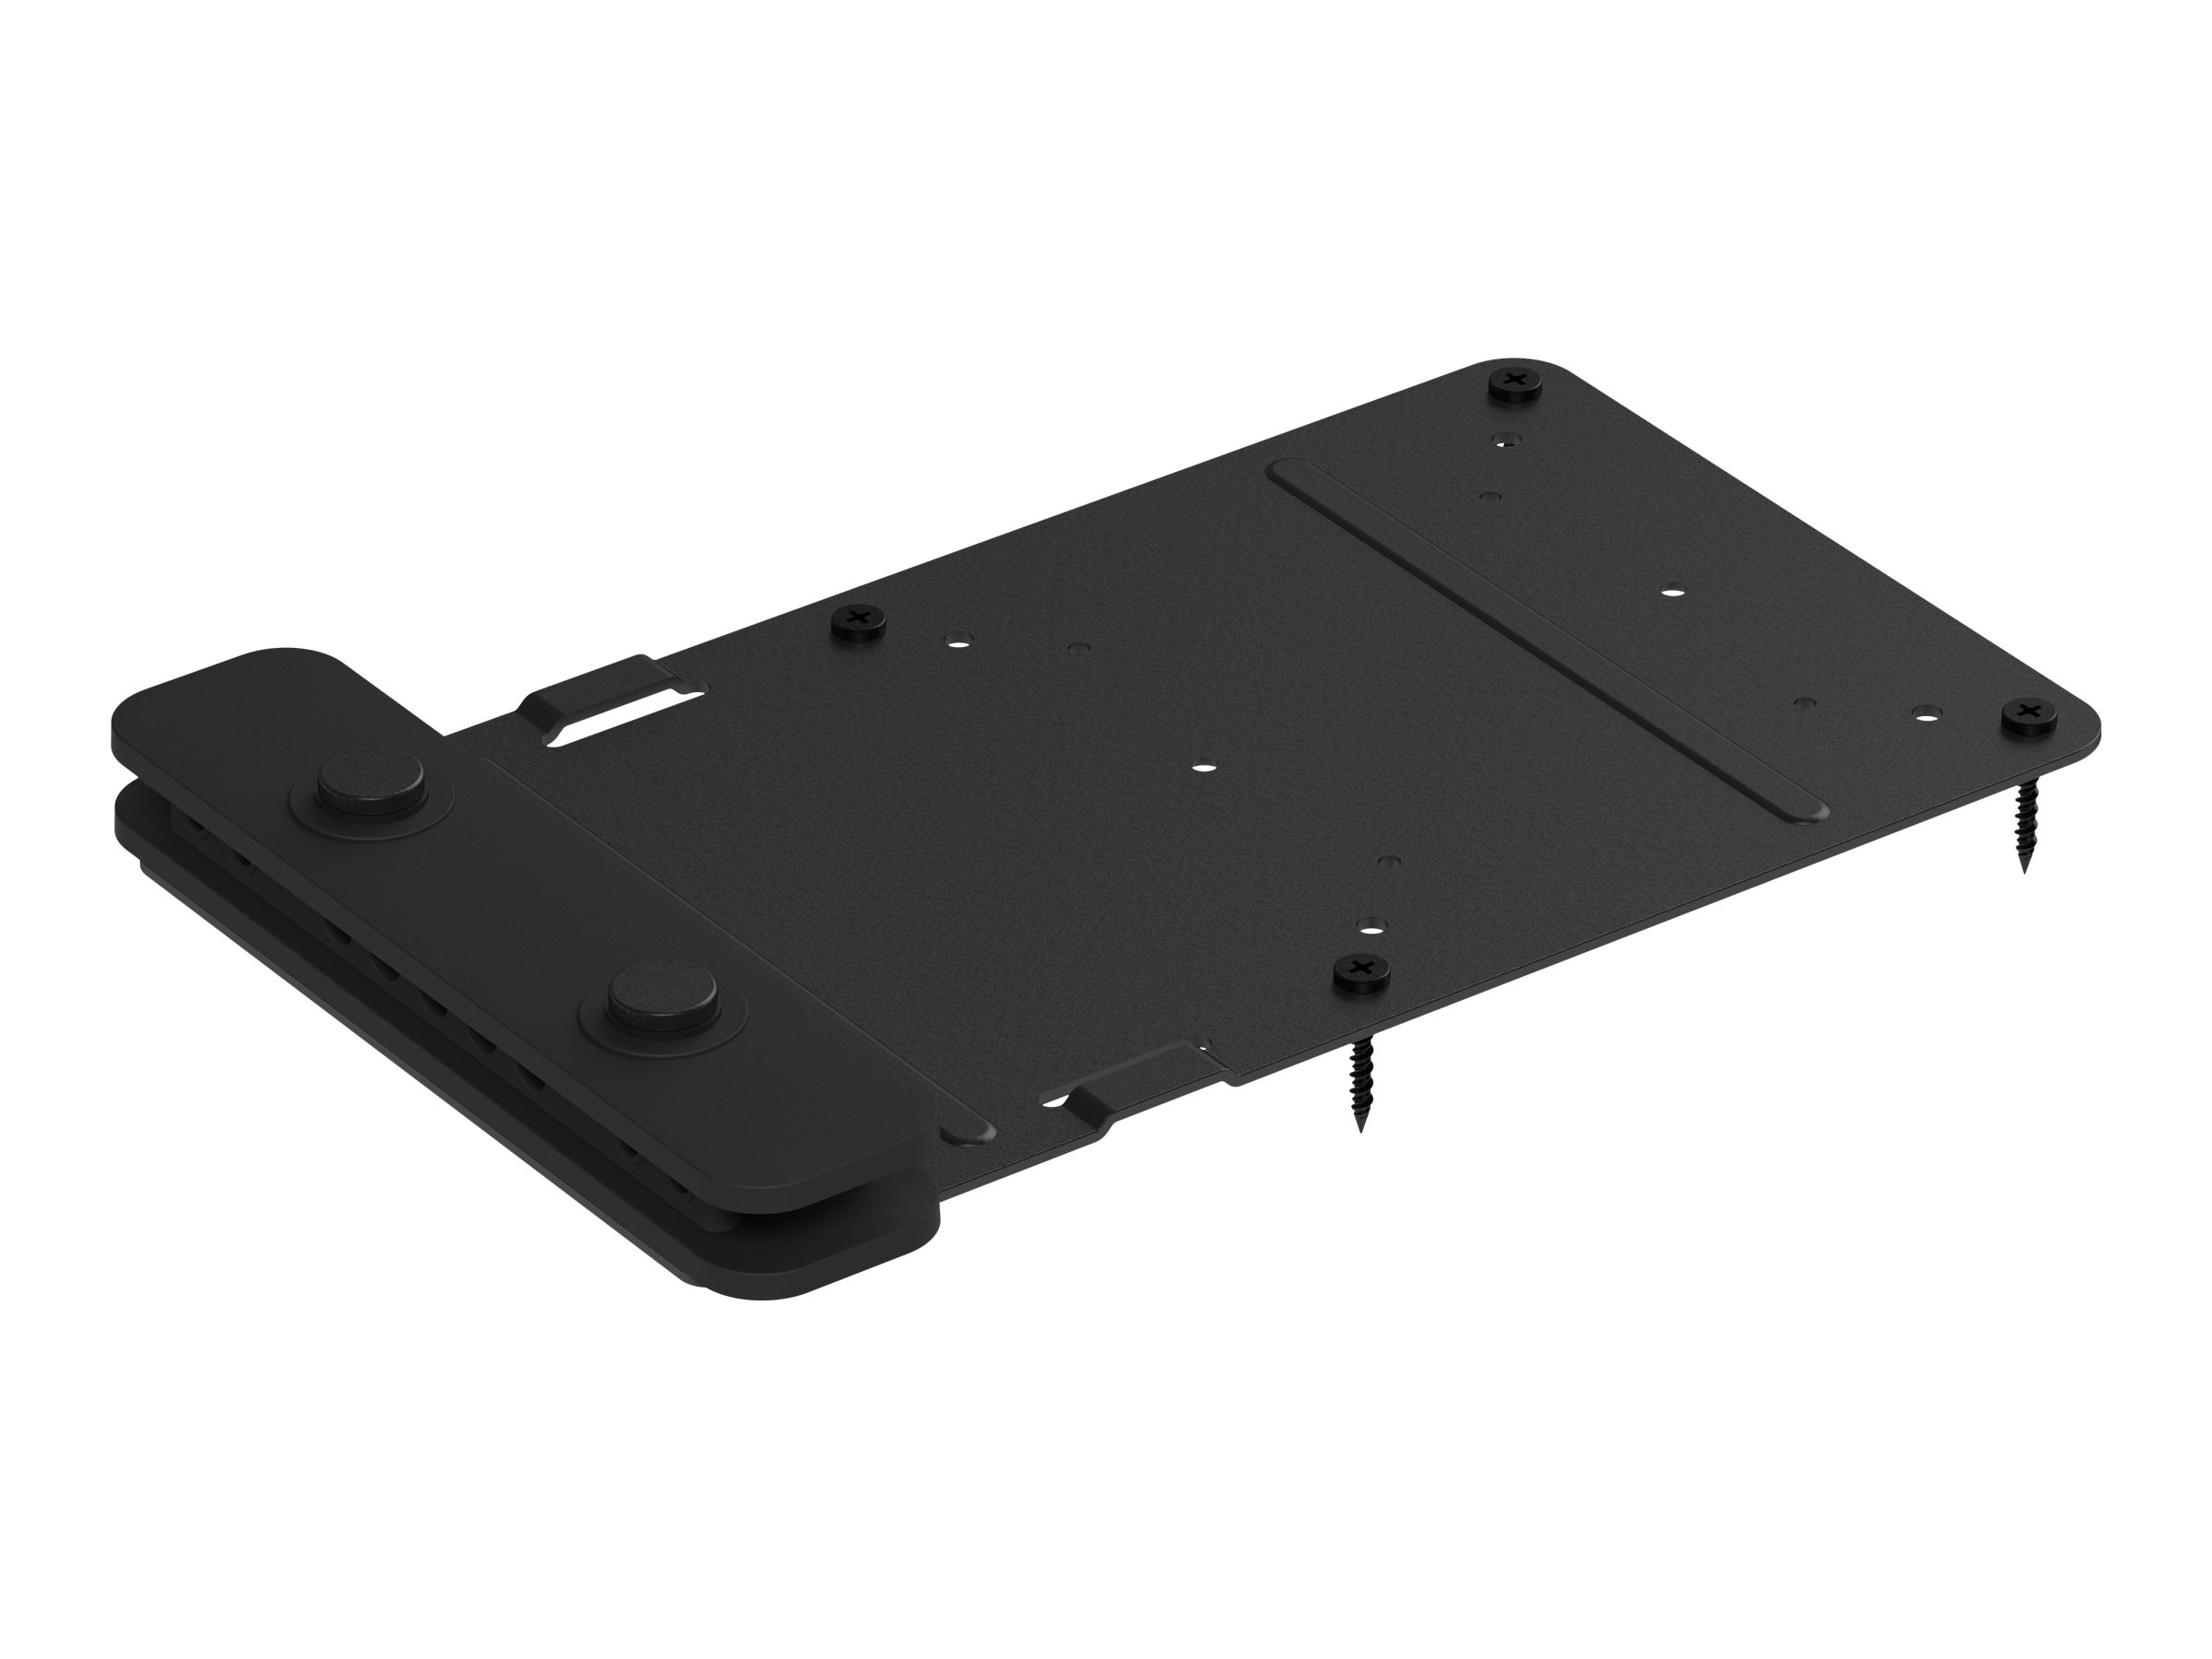 Logitech Tap PC Mount video conferencing controller mounting kit